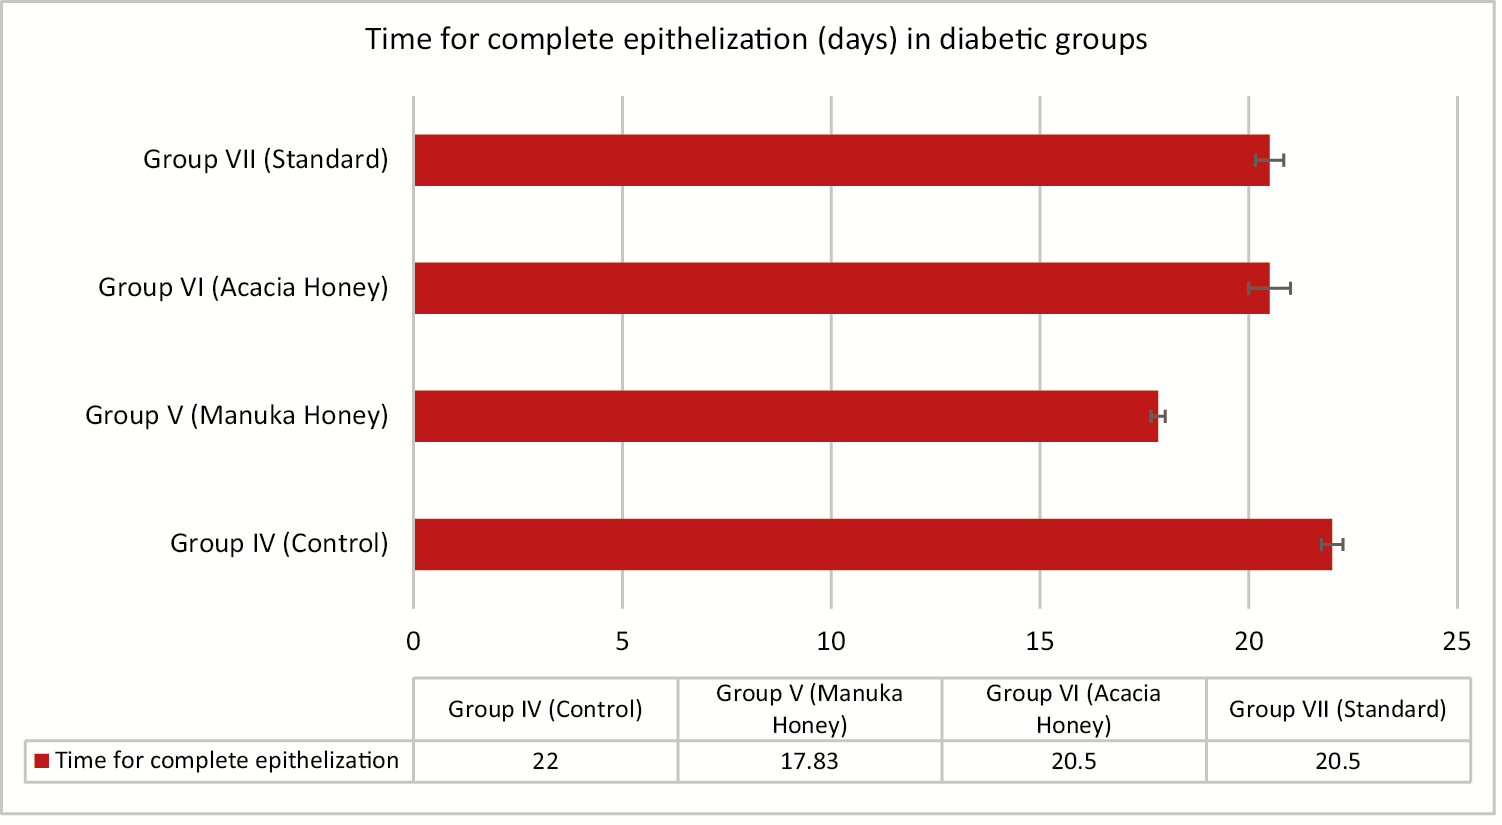 Figure 7: Time for complete epithelization (days) in the diabetic group